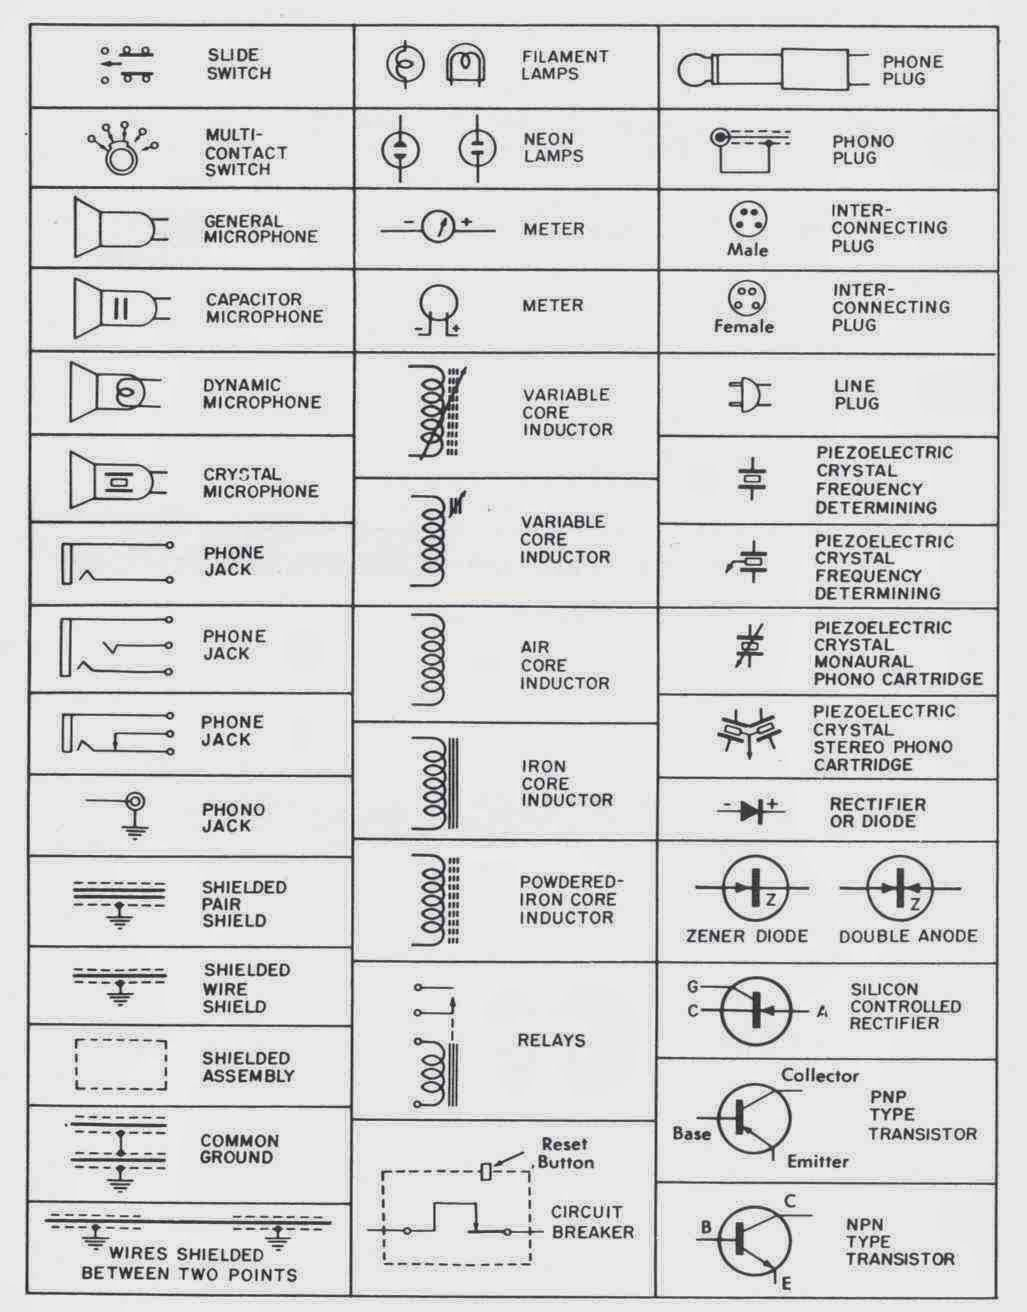 Wiring Diagram Symbols Bilder Wire Data Schema Aircraft Electrical 11 Engineering Pics Yasir Rh Pinterest Ca